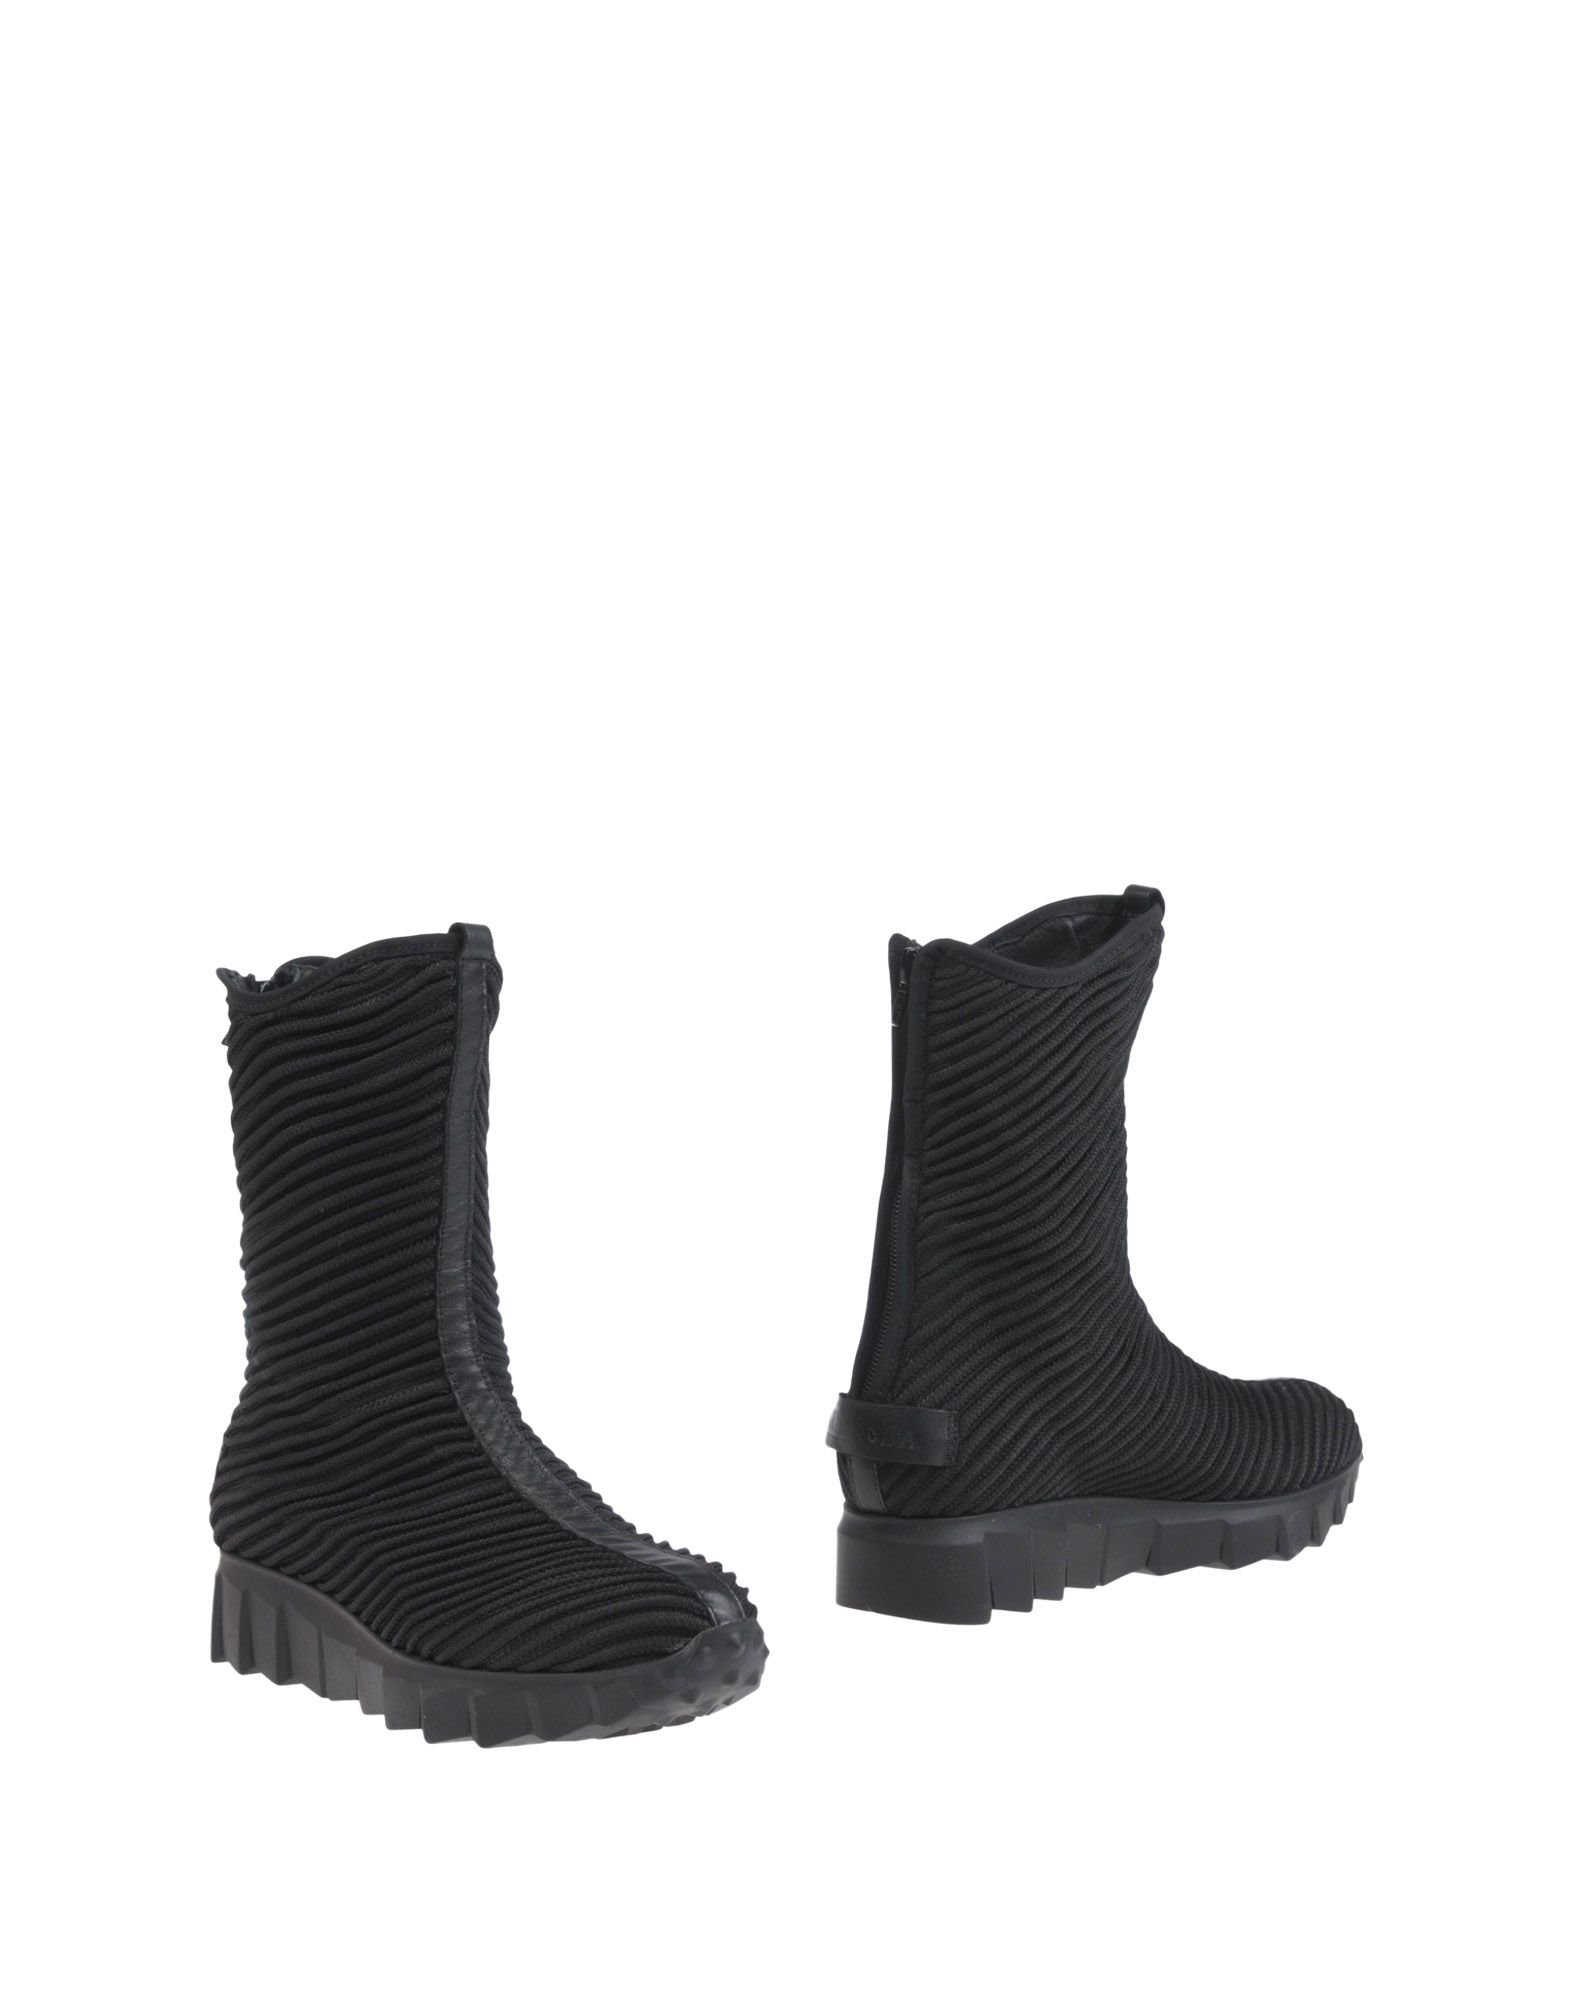 Andìa Fora Ankle Boot - Fora Women Andìa Fora - Ankle Boots online on  Canada - 11278738DW 7c563a